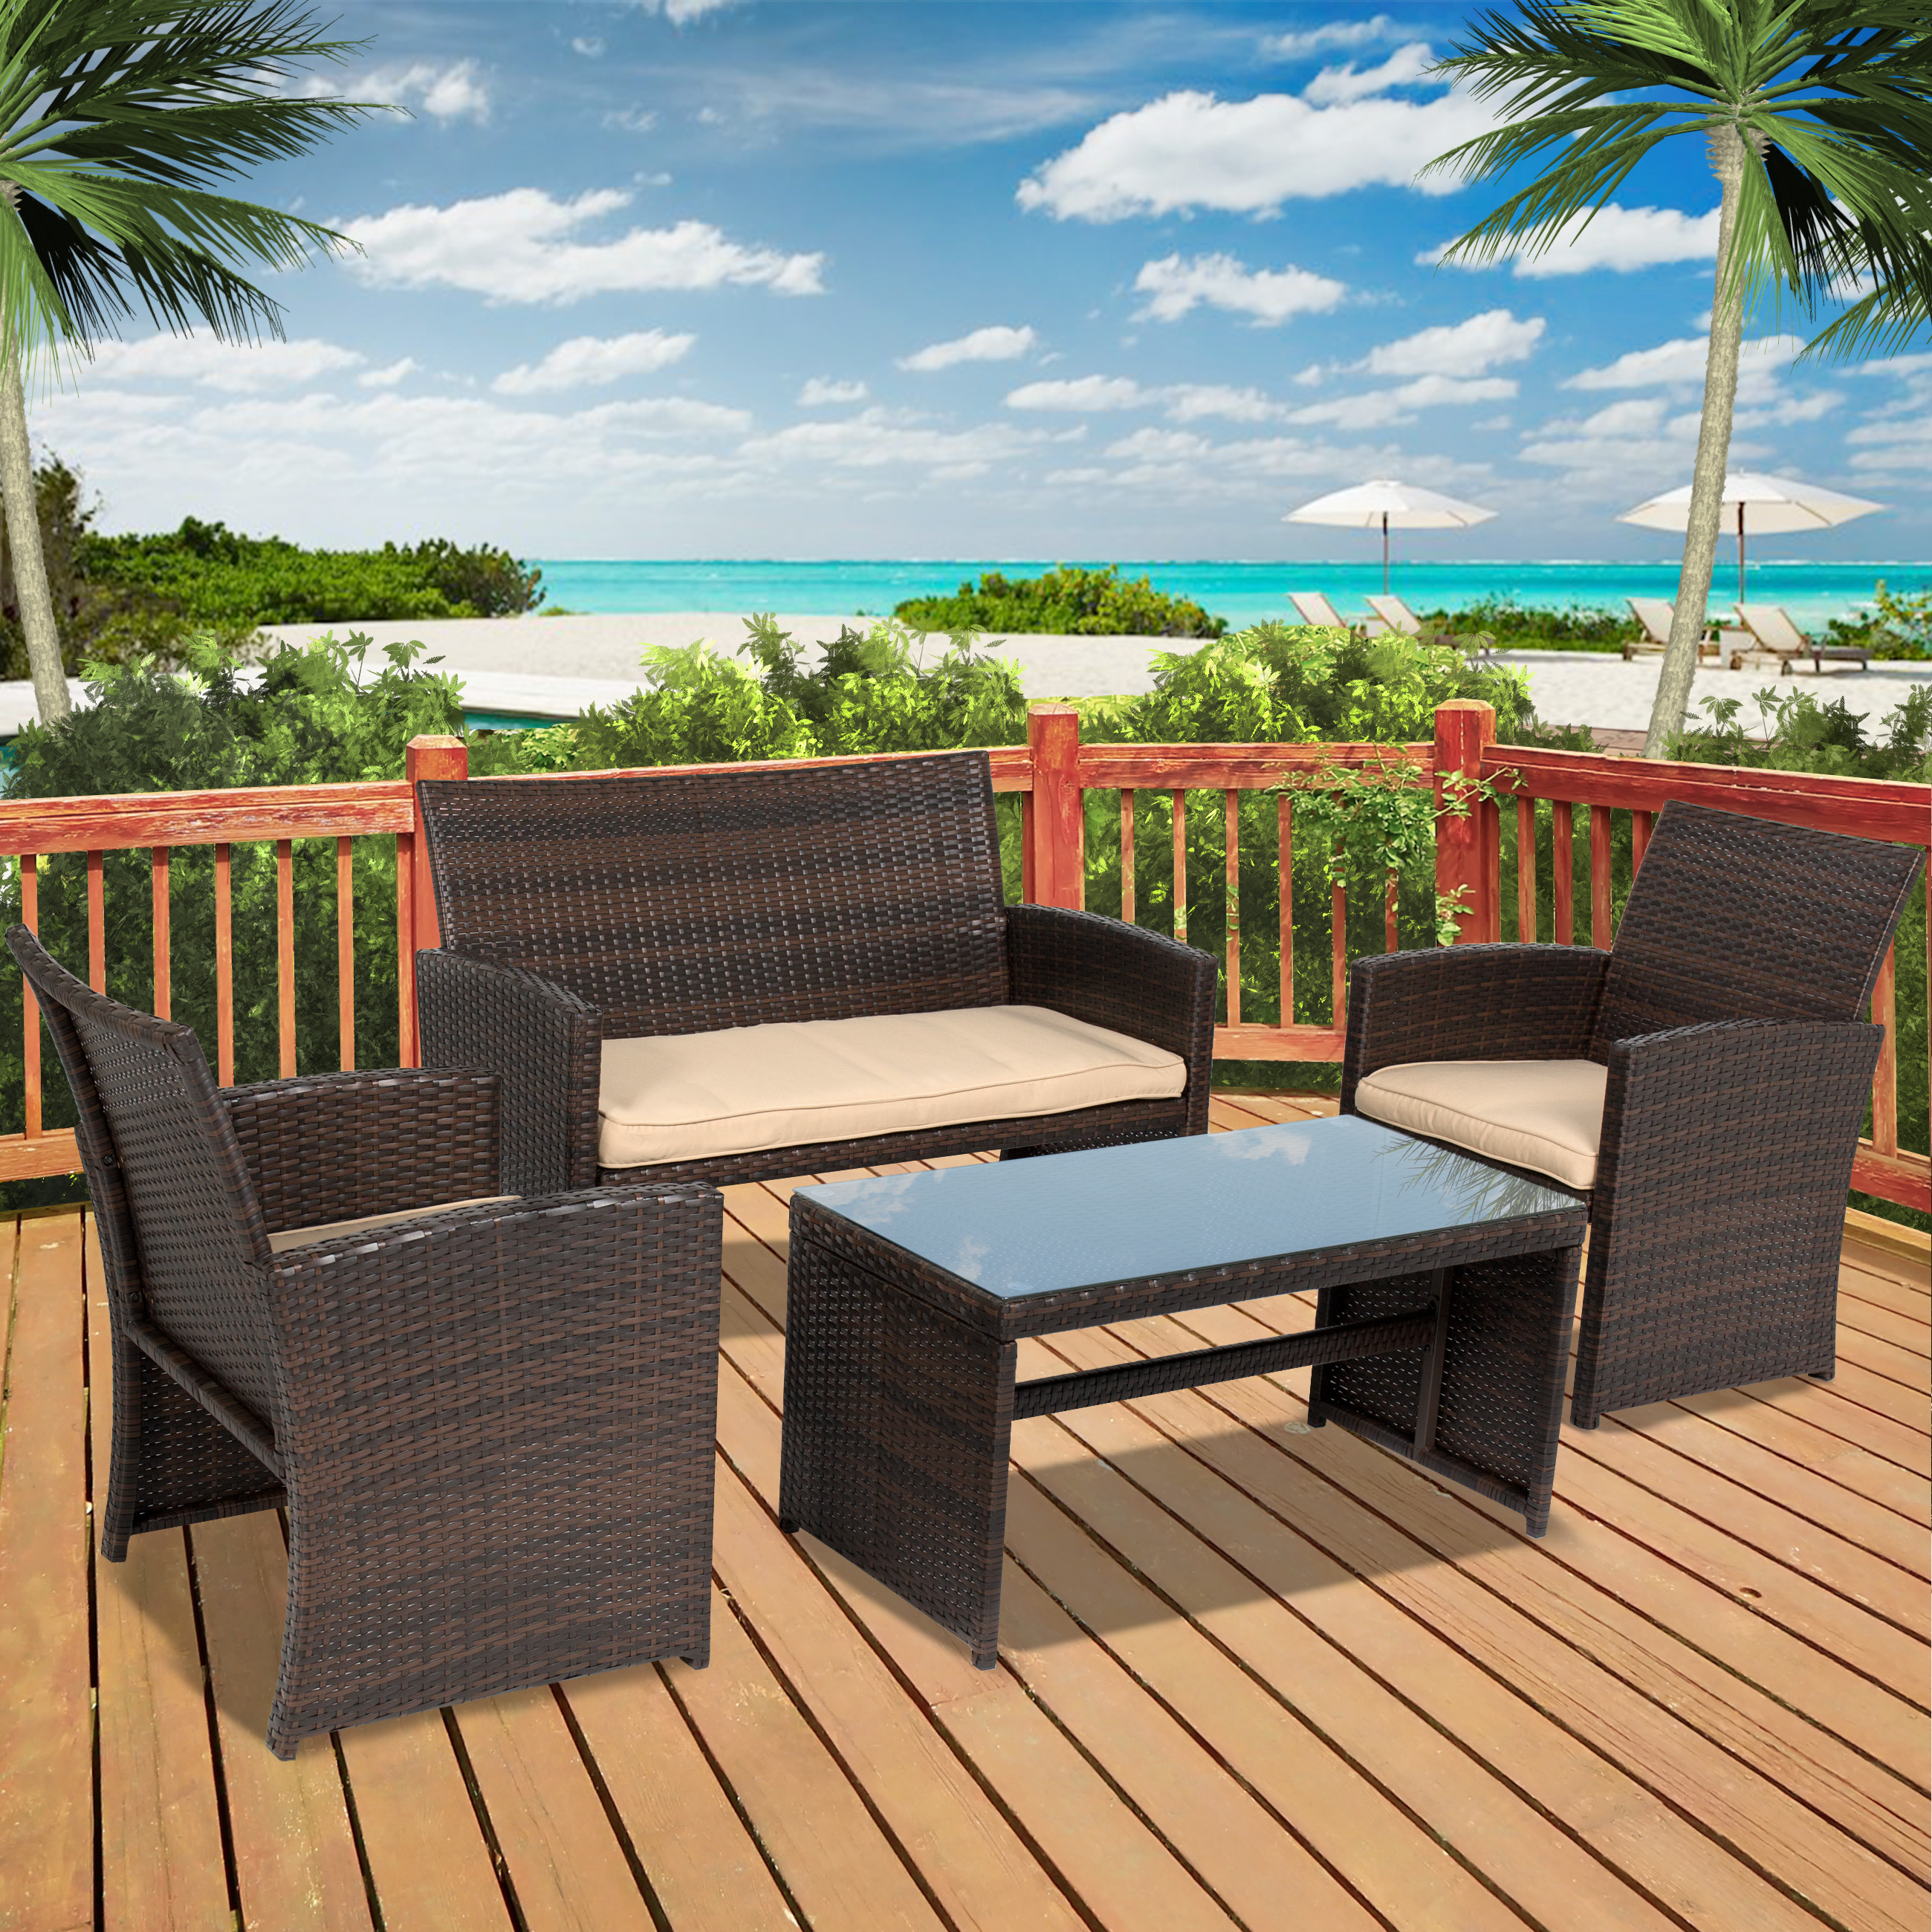 Best Choice Products 4pc Wicker Outdoor Patio Furniture Set Cushioned Seats by